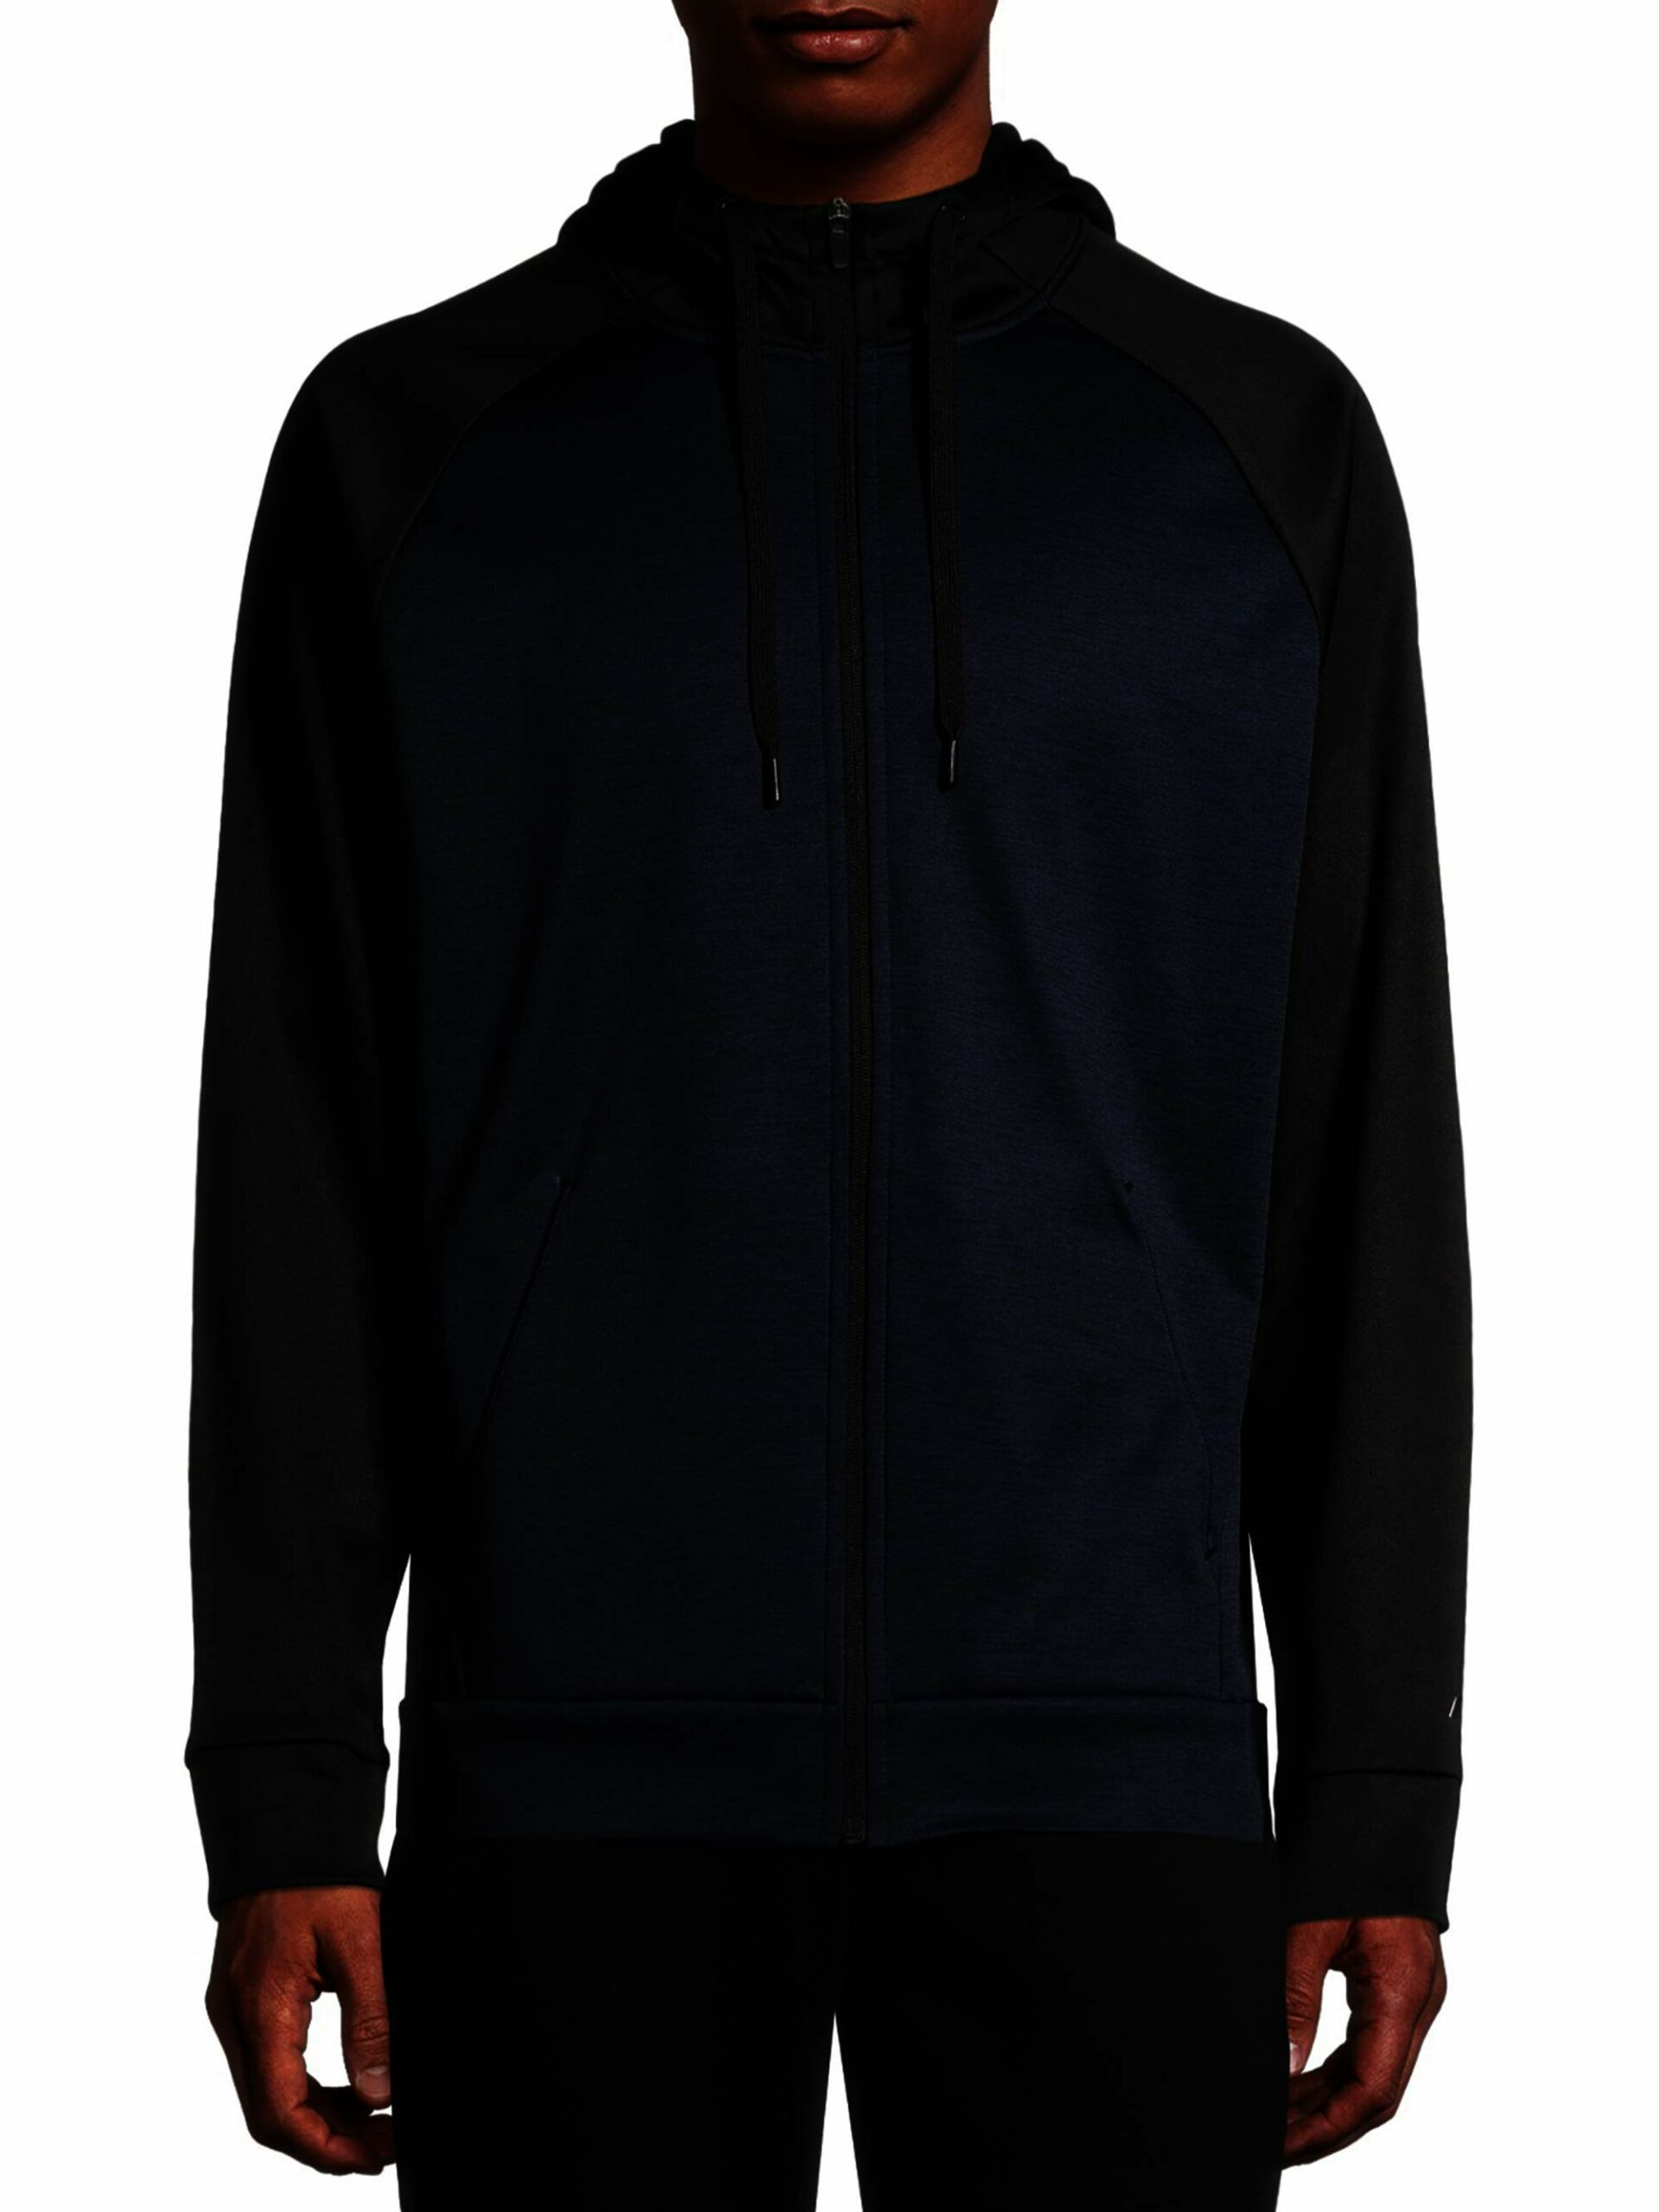 Russell Men's Active Tech Fleece Pullover Full Zip Jacket Rich Black/Blue Cove Heather Size (L/G 42-44)